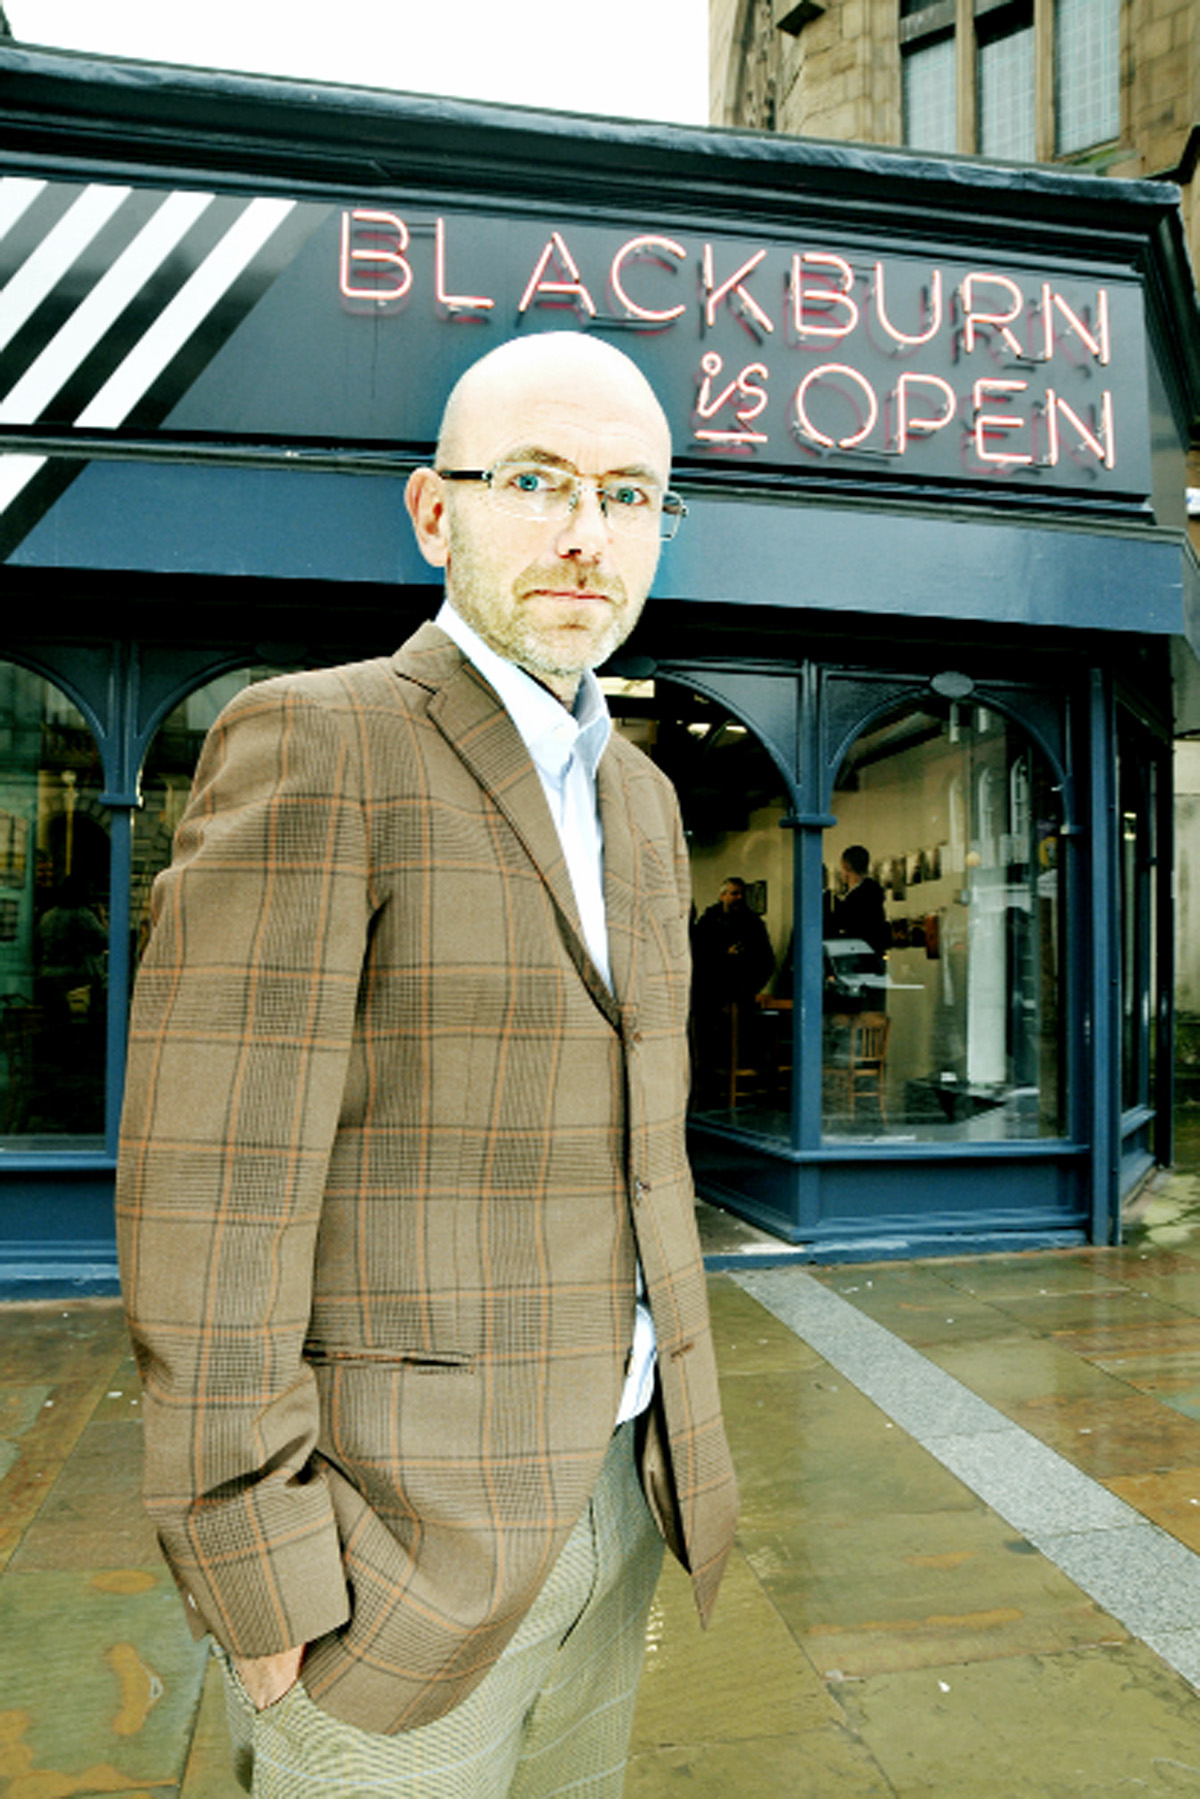 Design guru Wayne Hemingway aims to boost town's culture